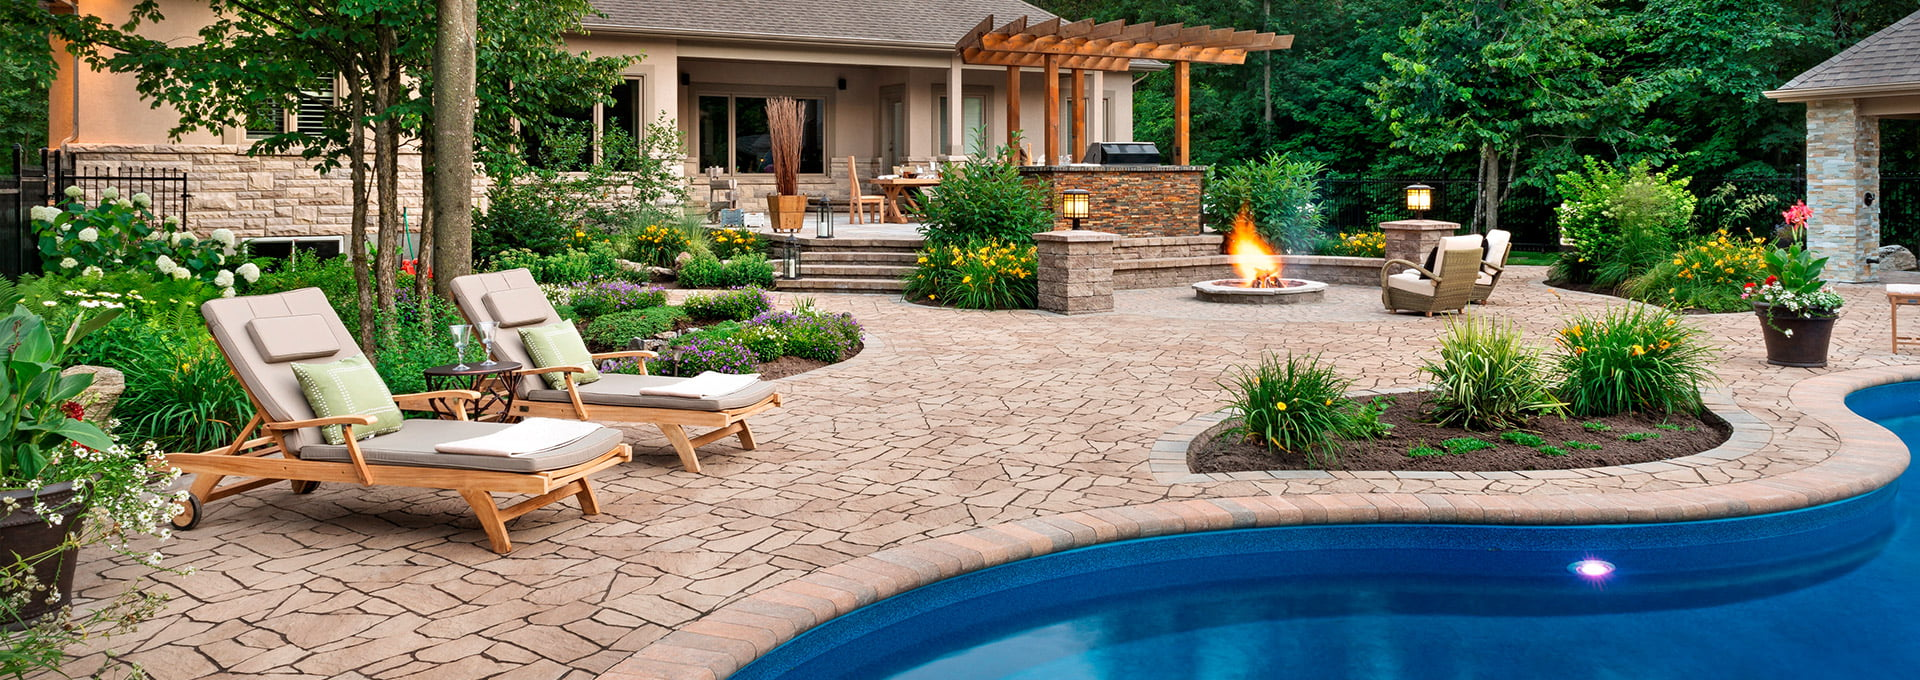 NJ Residential Landscape Design by High Tech Landscapes